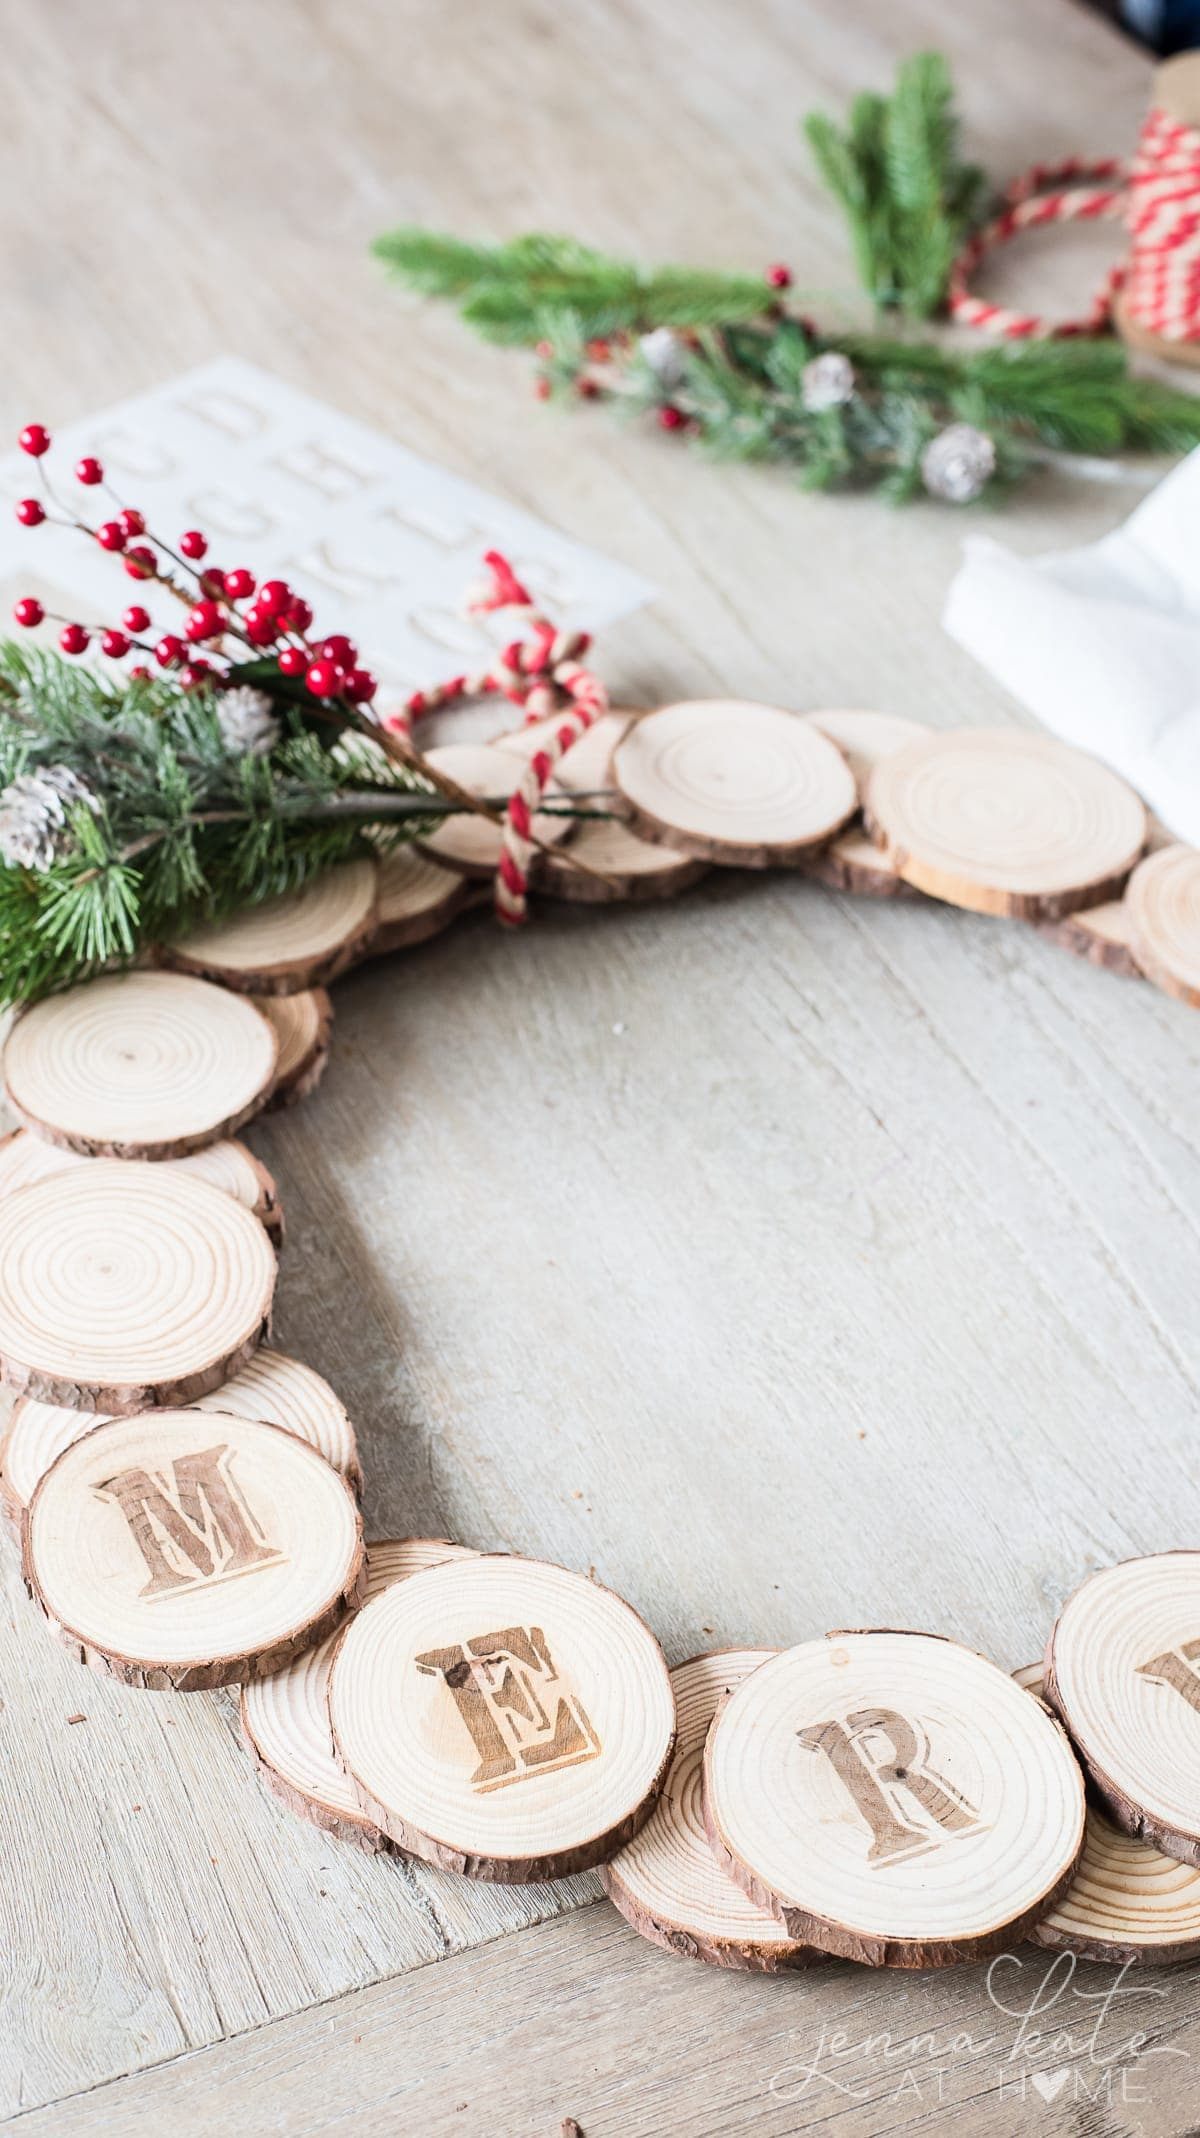 Faux berries attached to the wreath